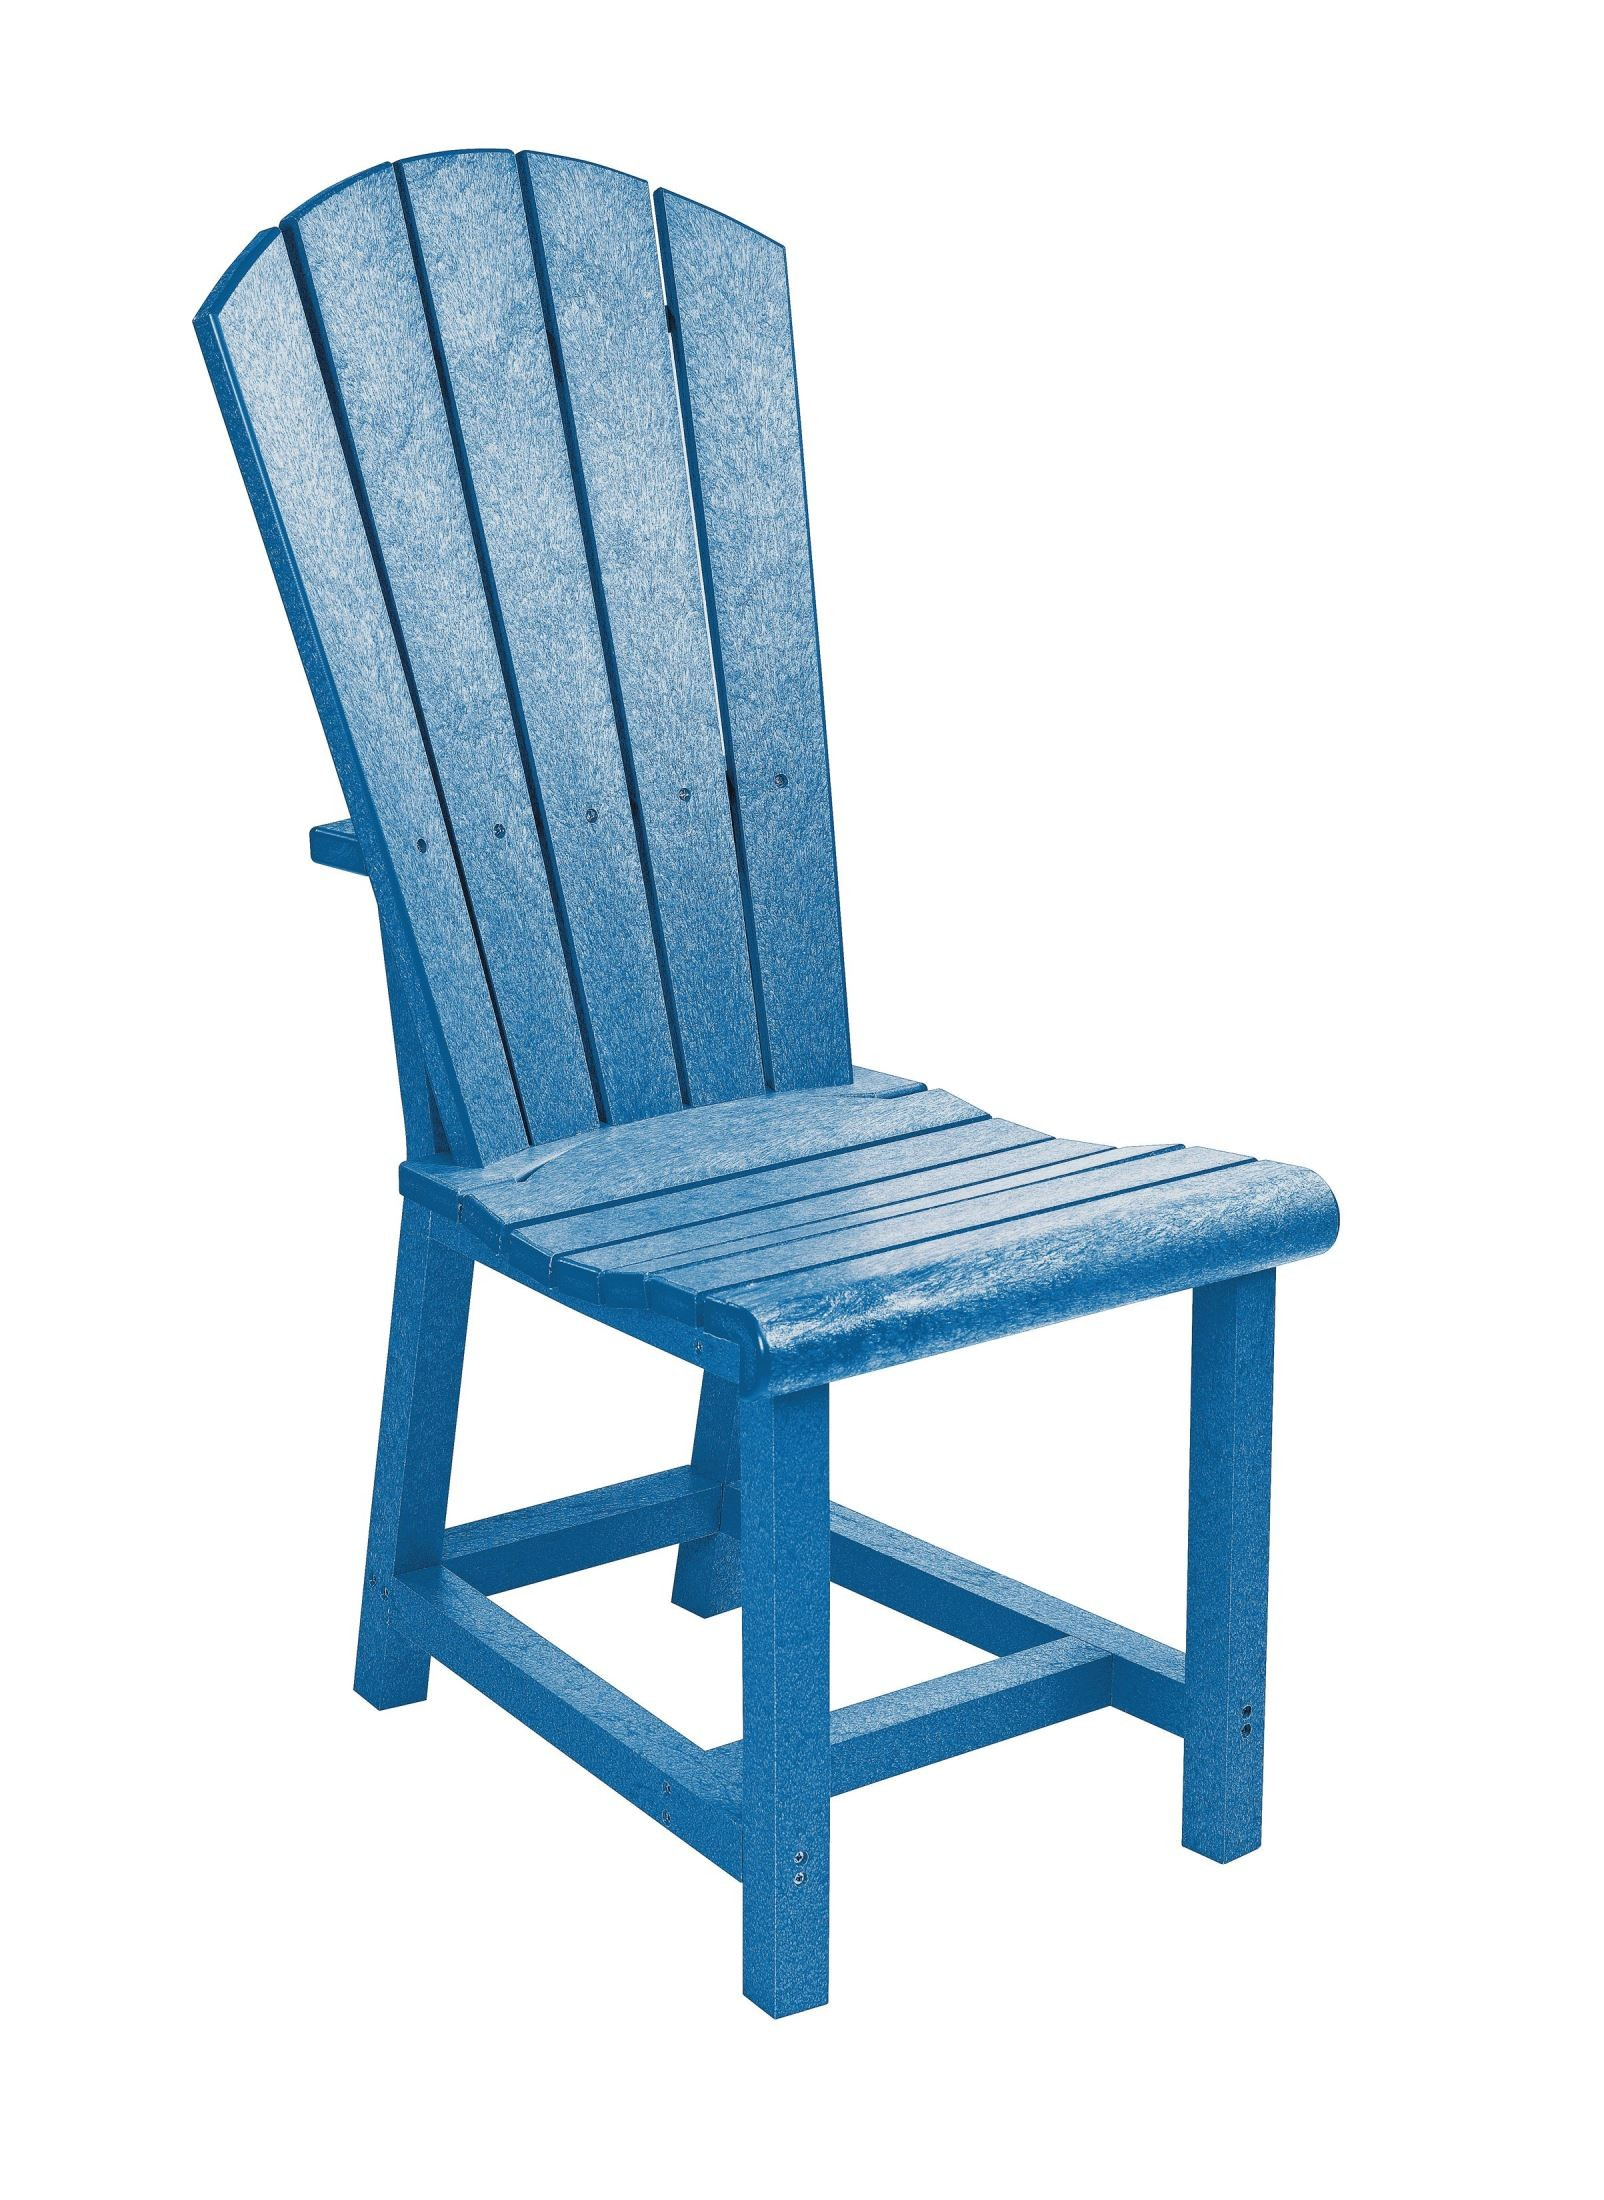 adirondack style dining chairs round padded folding generations blue side chair from cr